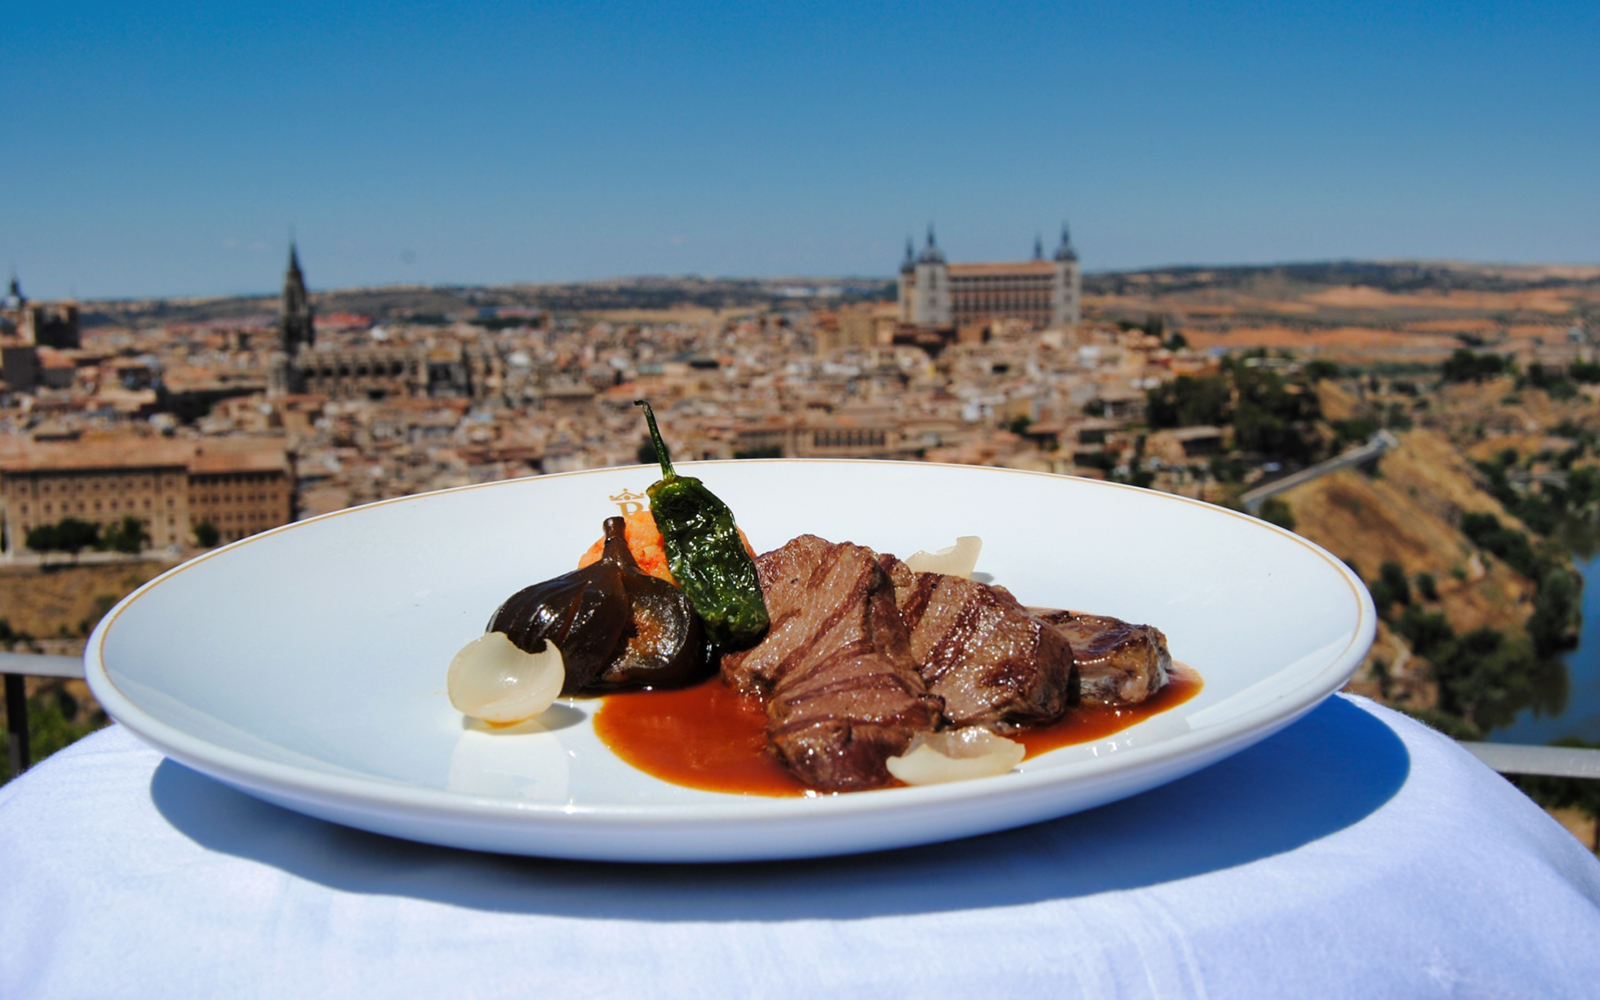 23934bb1 addd 4ee0 a4a3 5725e0651f81 9394 madrid full day tour to toledo with traditional lunch 02